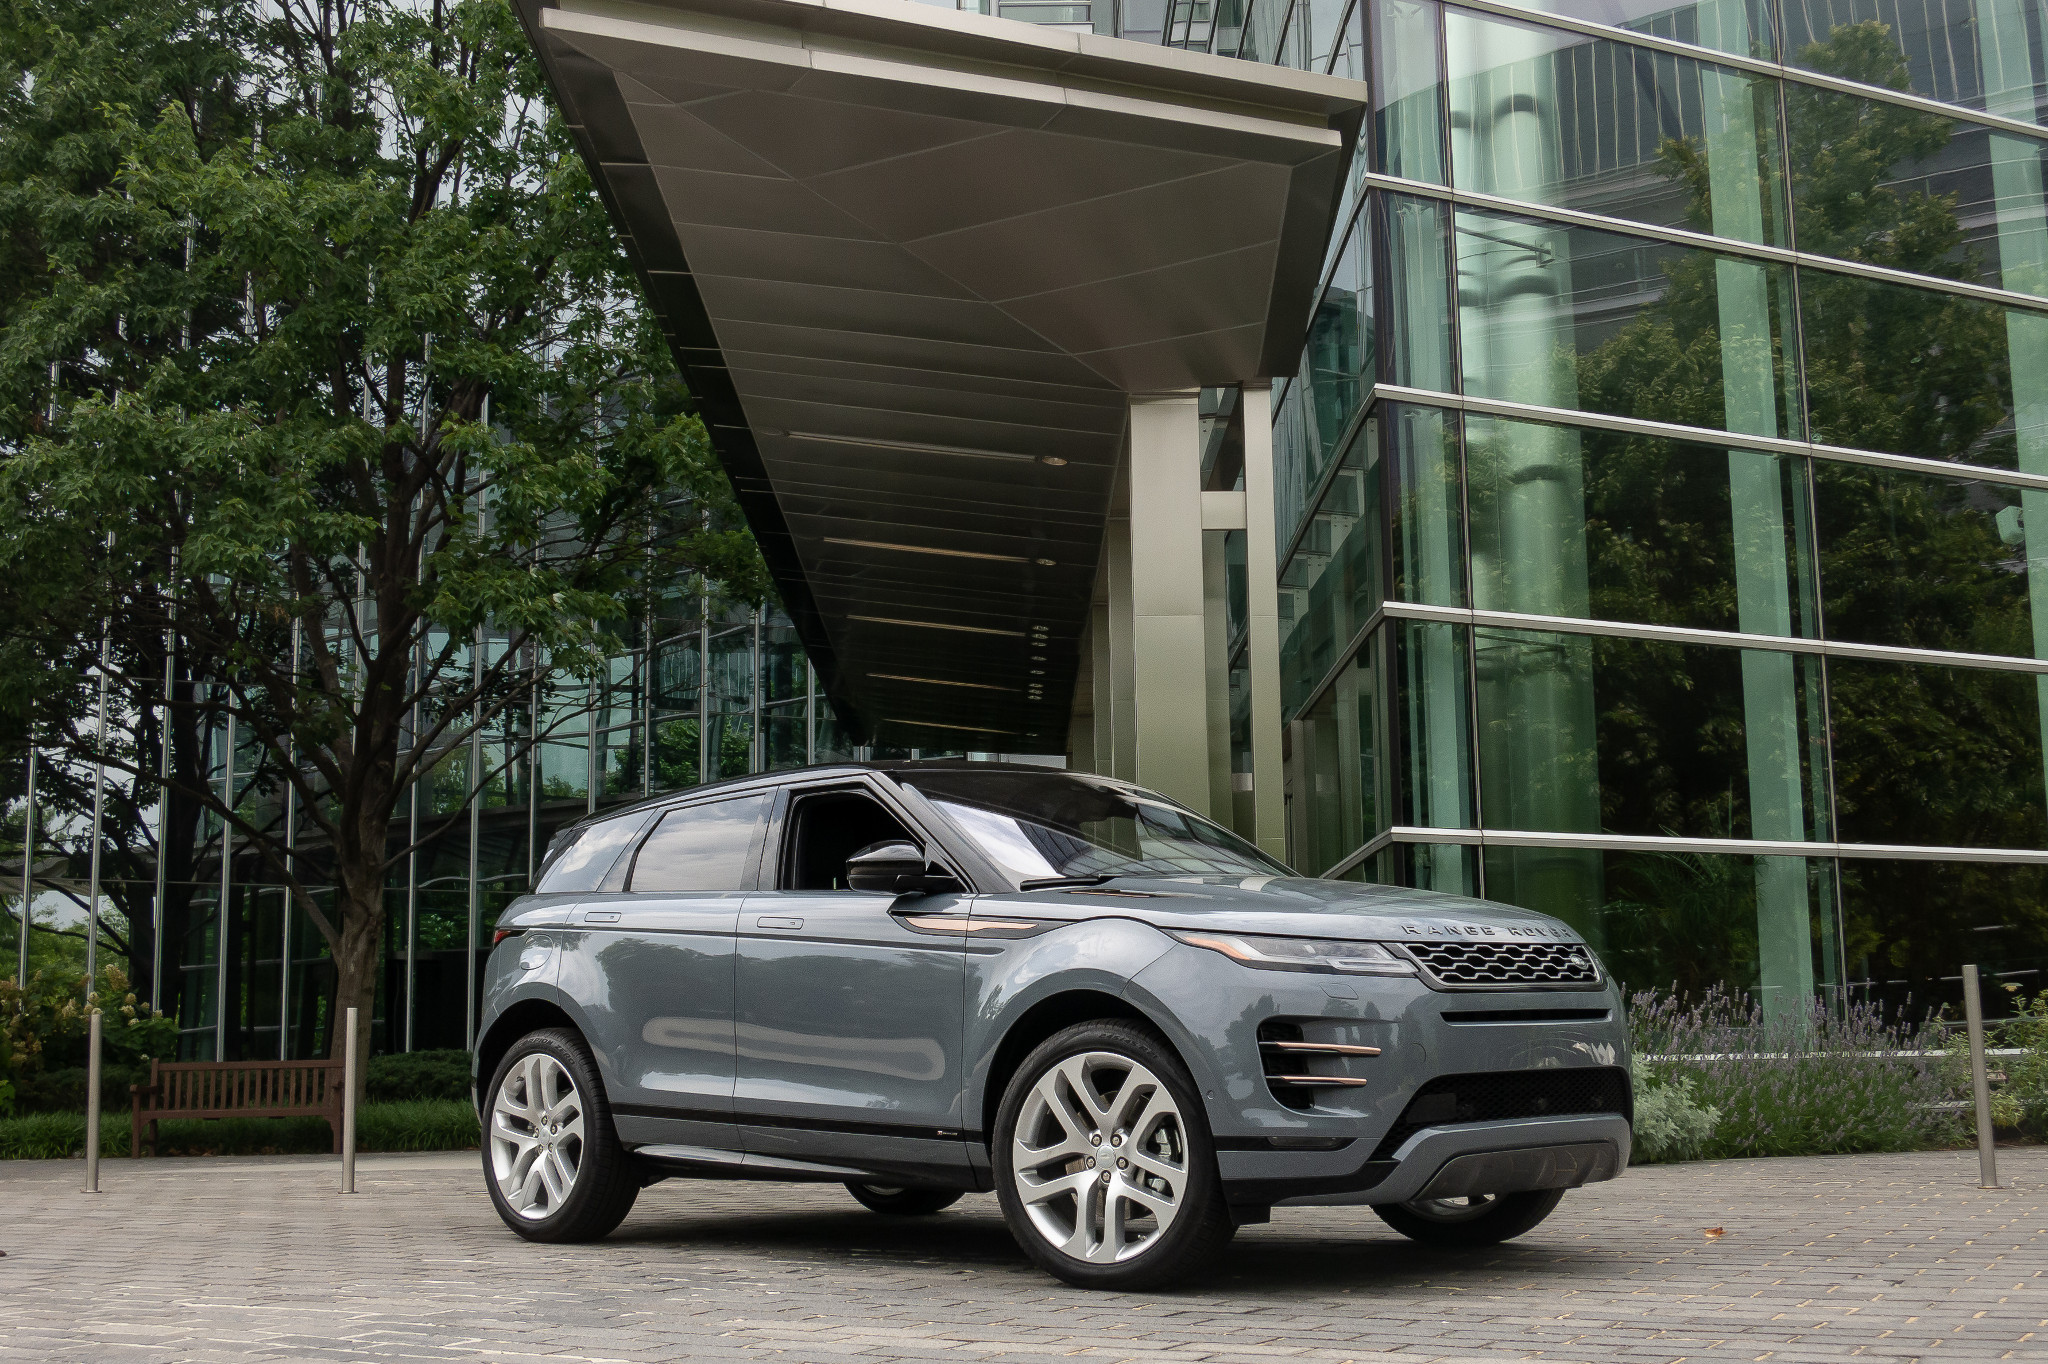 2020 Land Rover Range Rover Evoque Review: Form Over Function